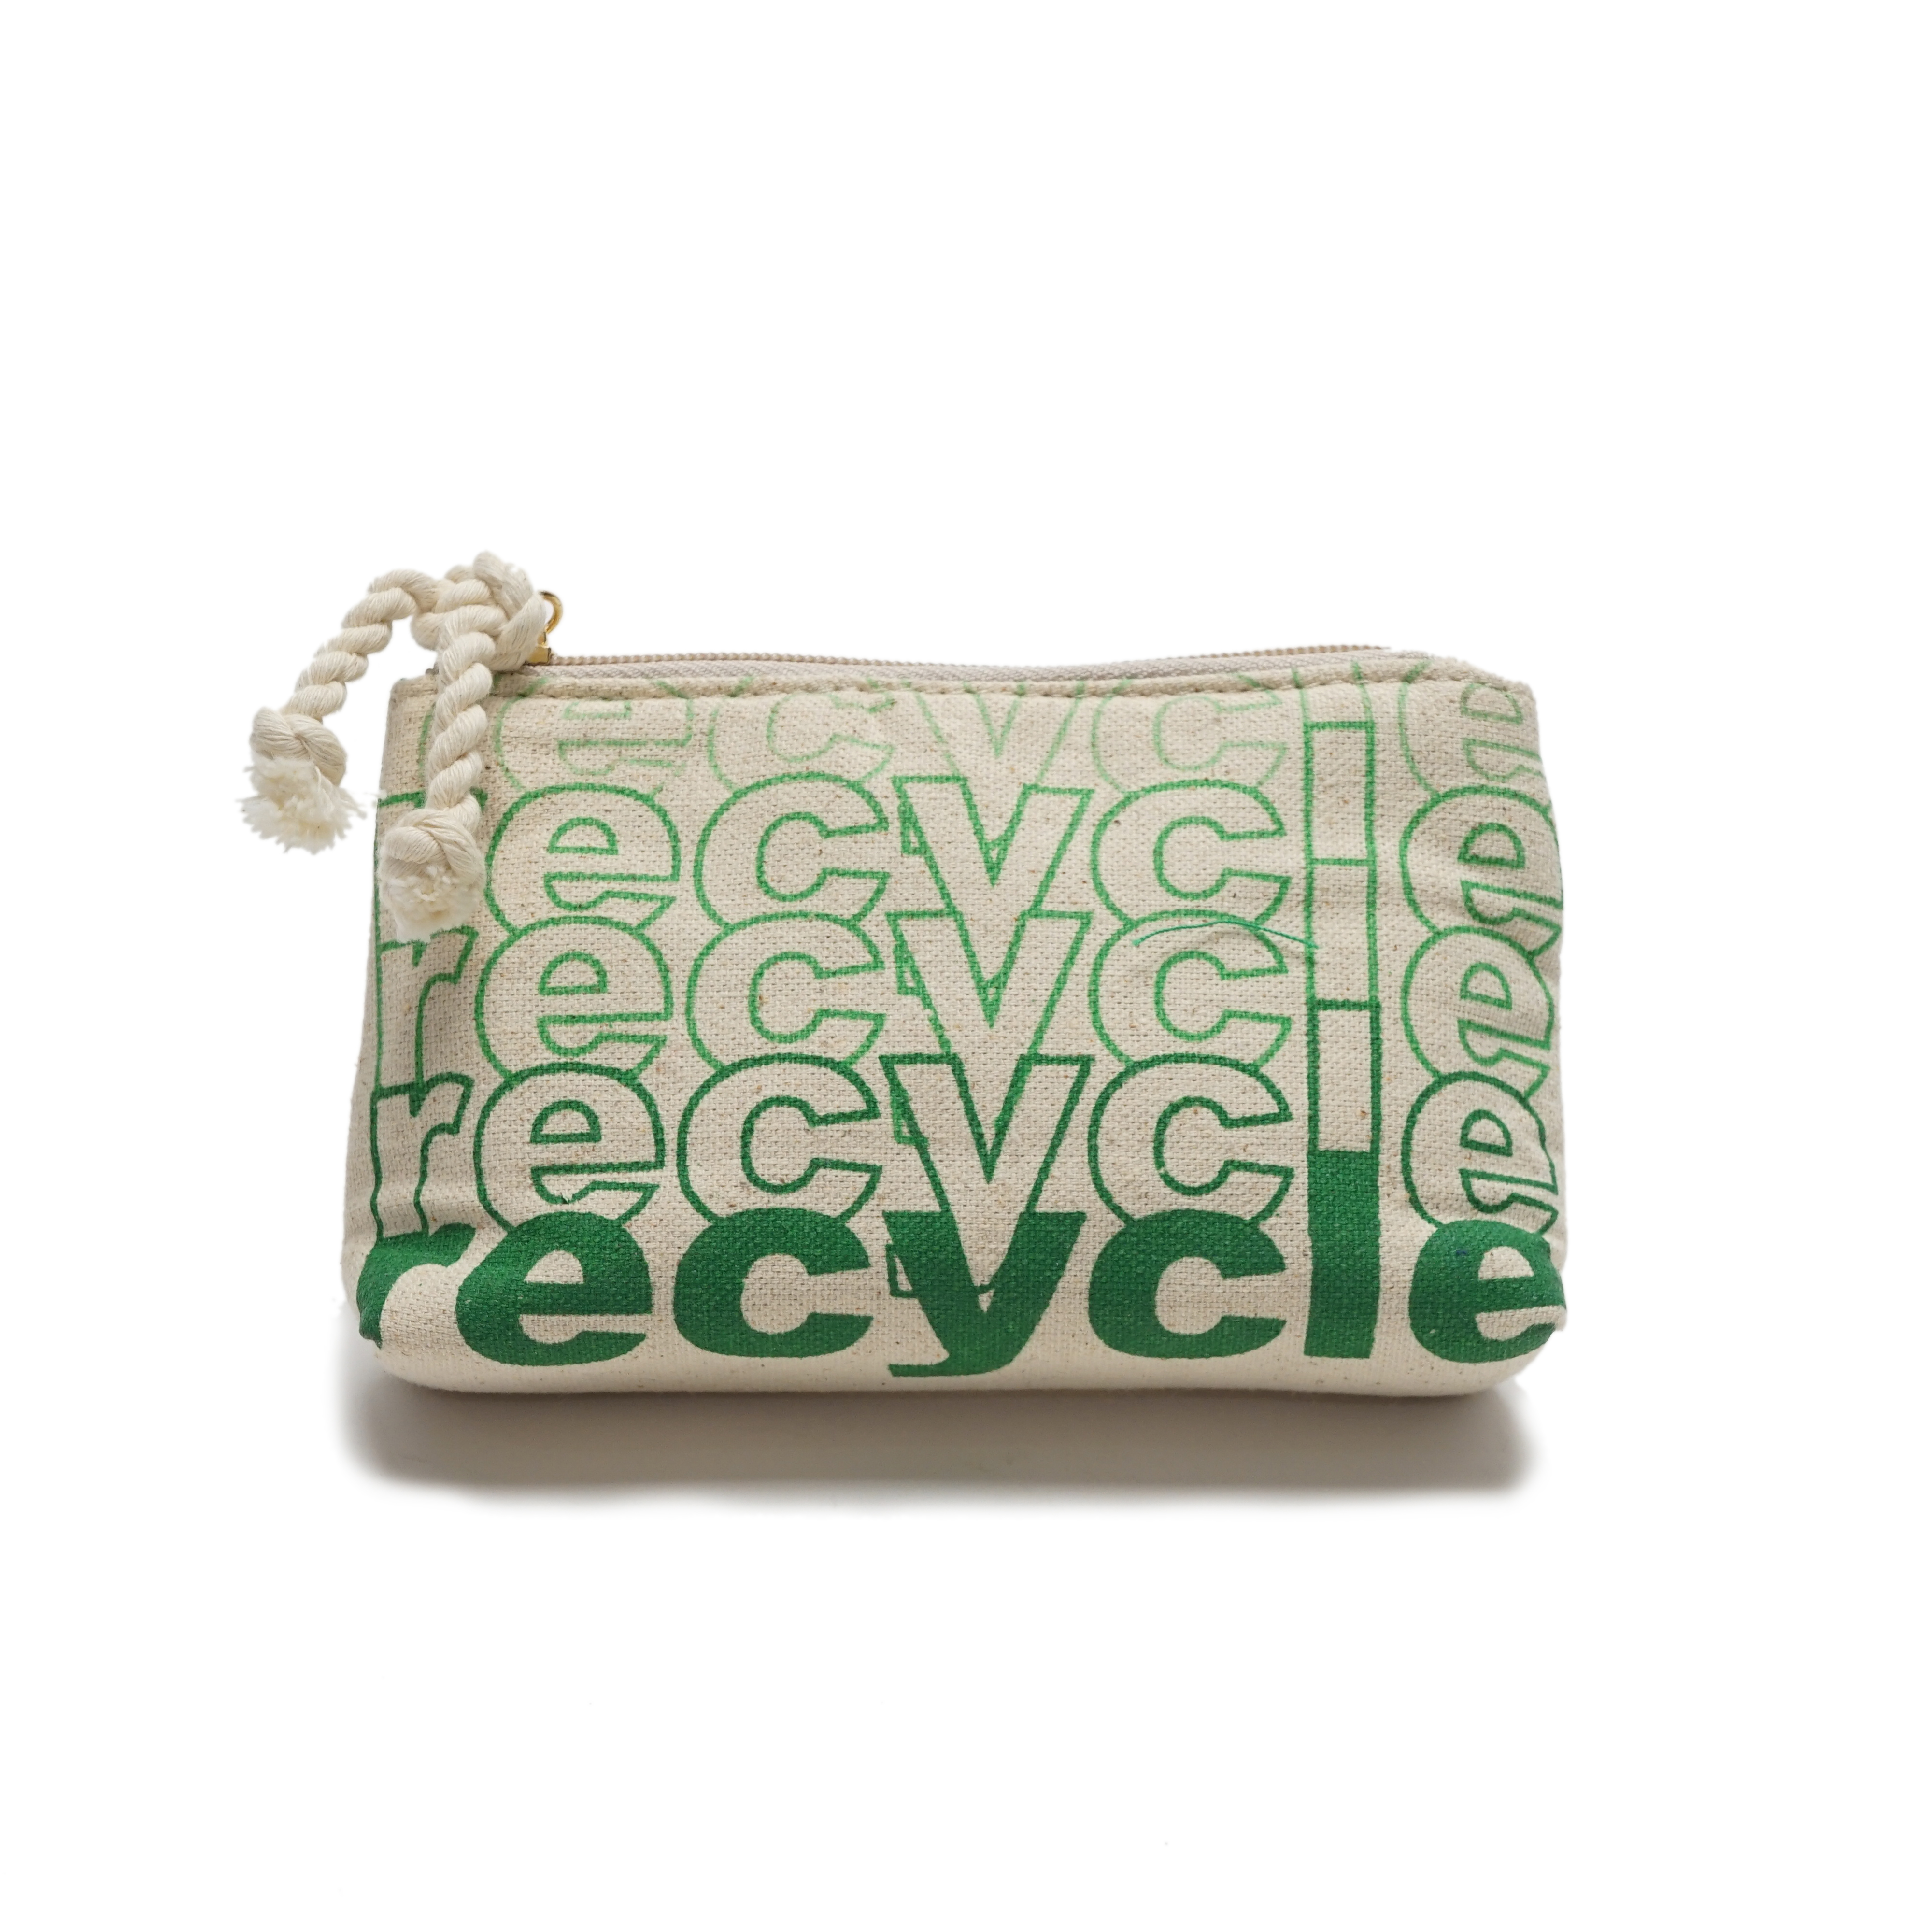 Recycled canvas pouch